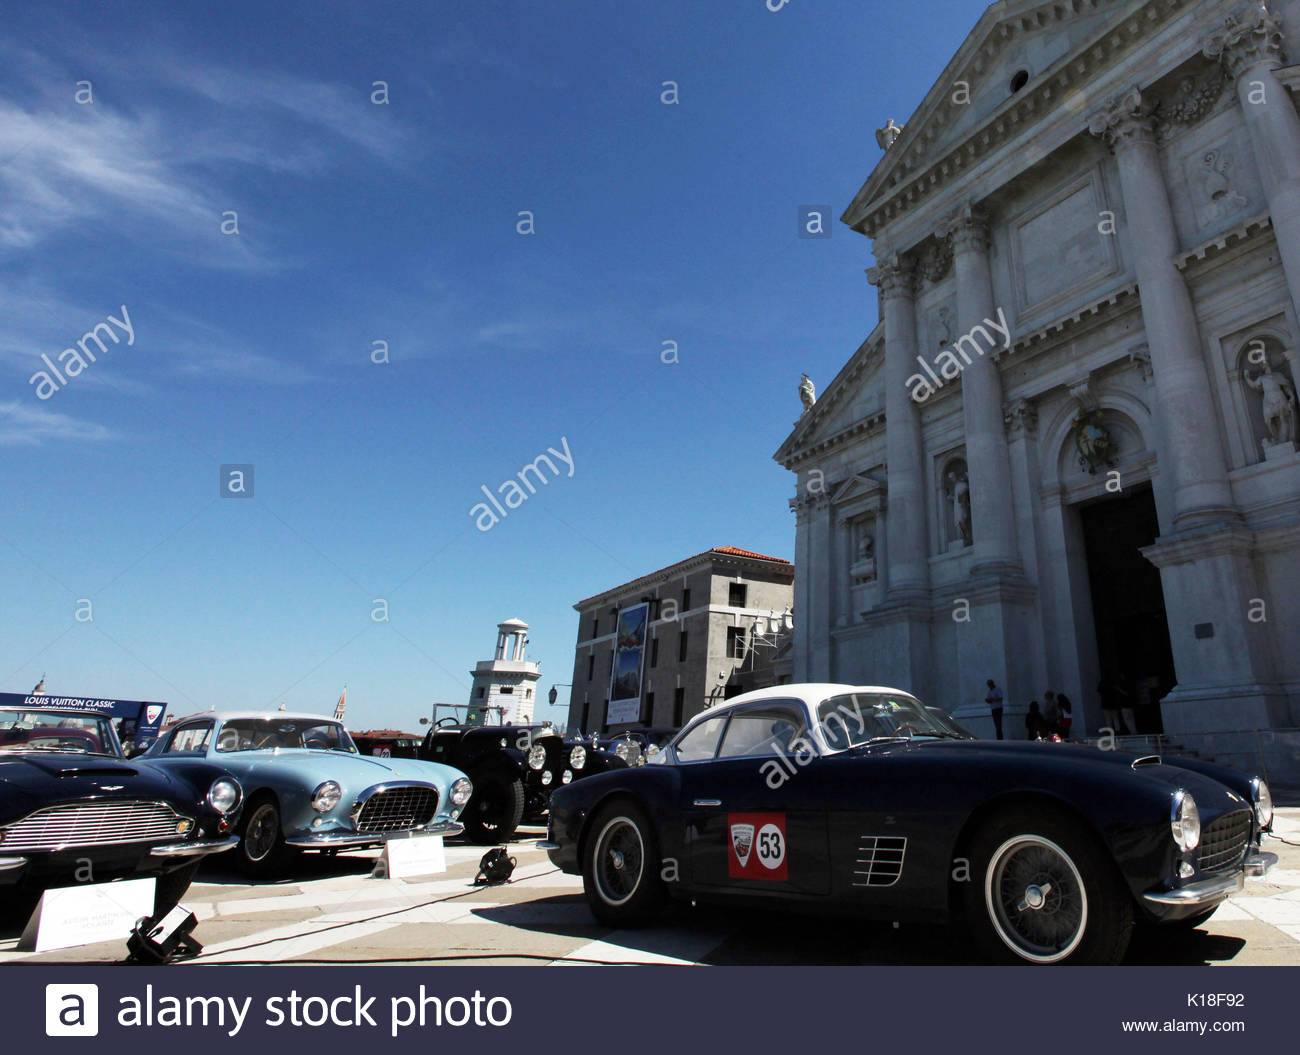 Louis Vuitton Classic Serenissima Run. The race of vintage cars ...